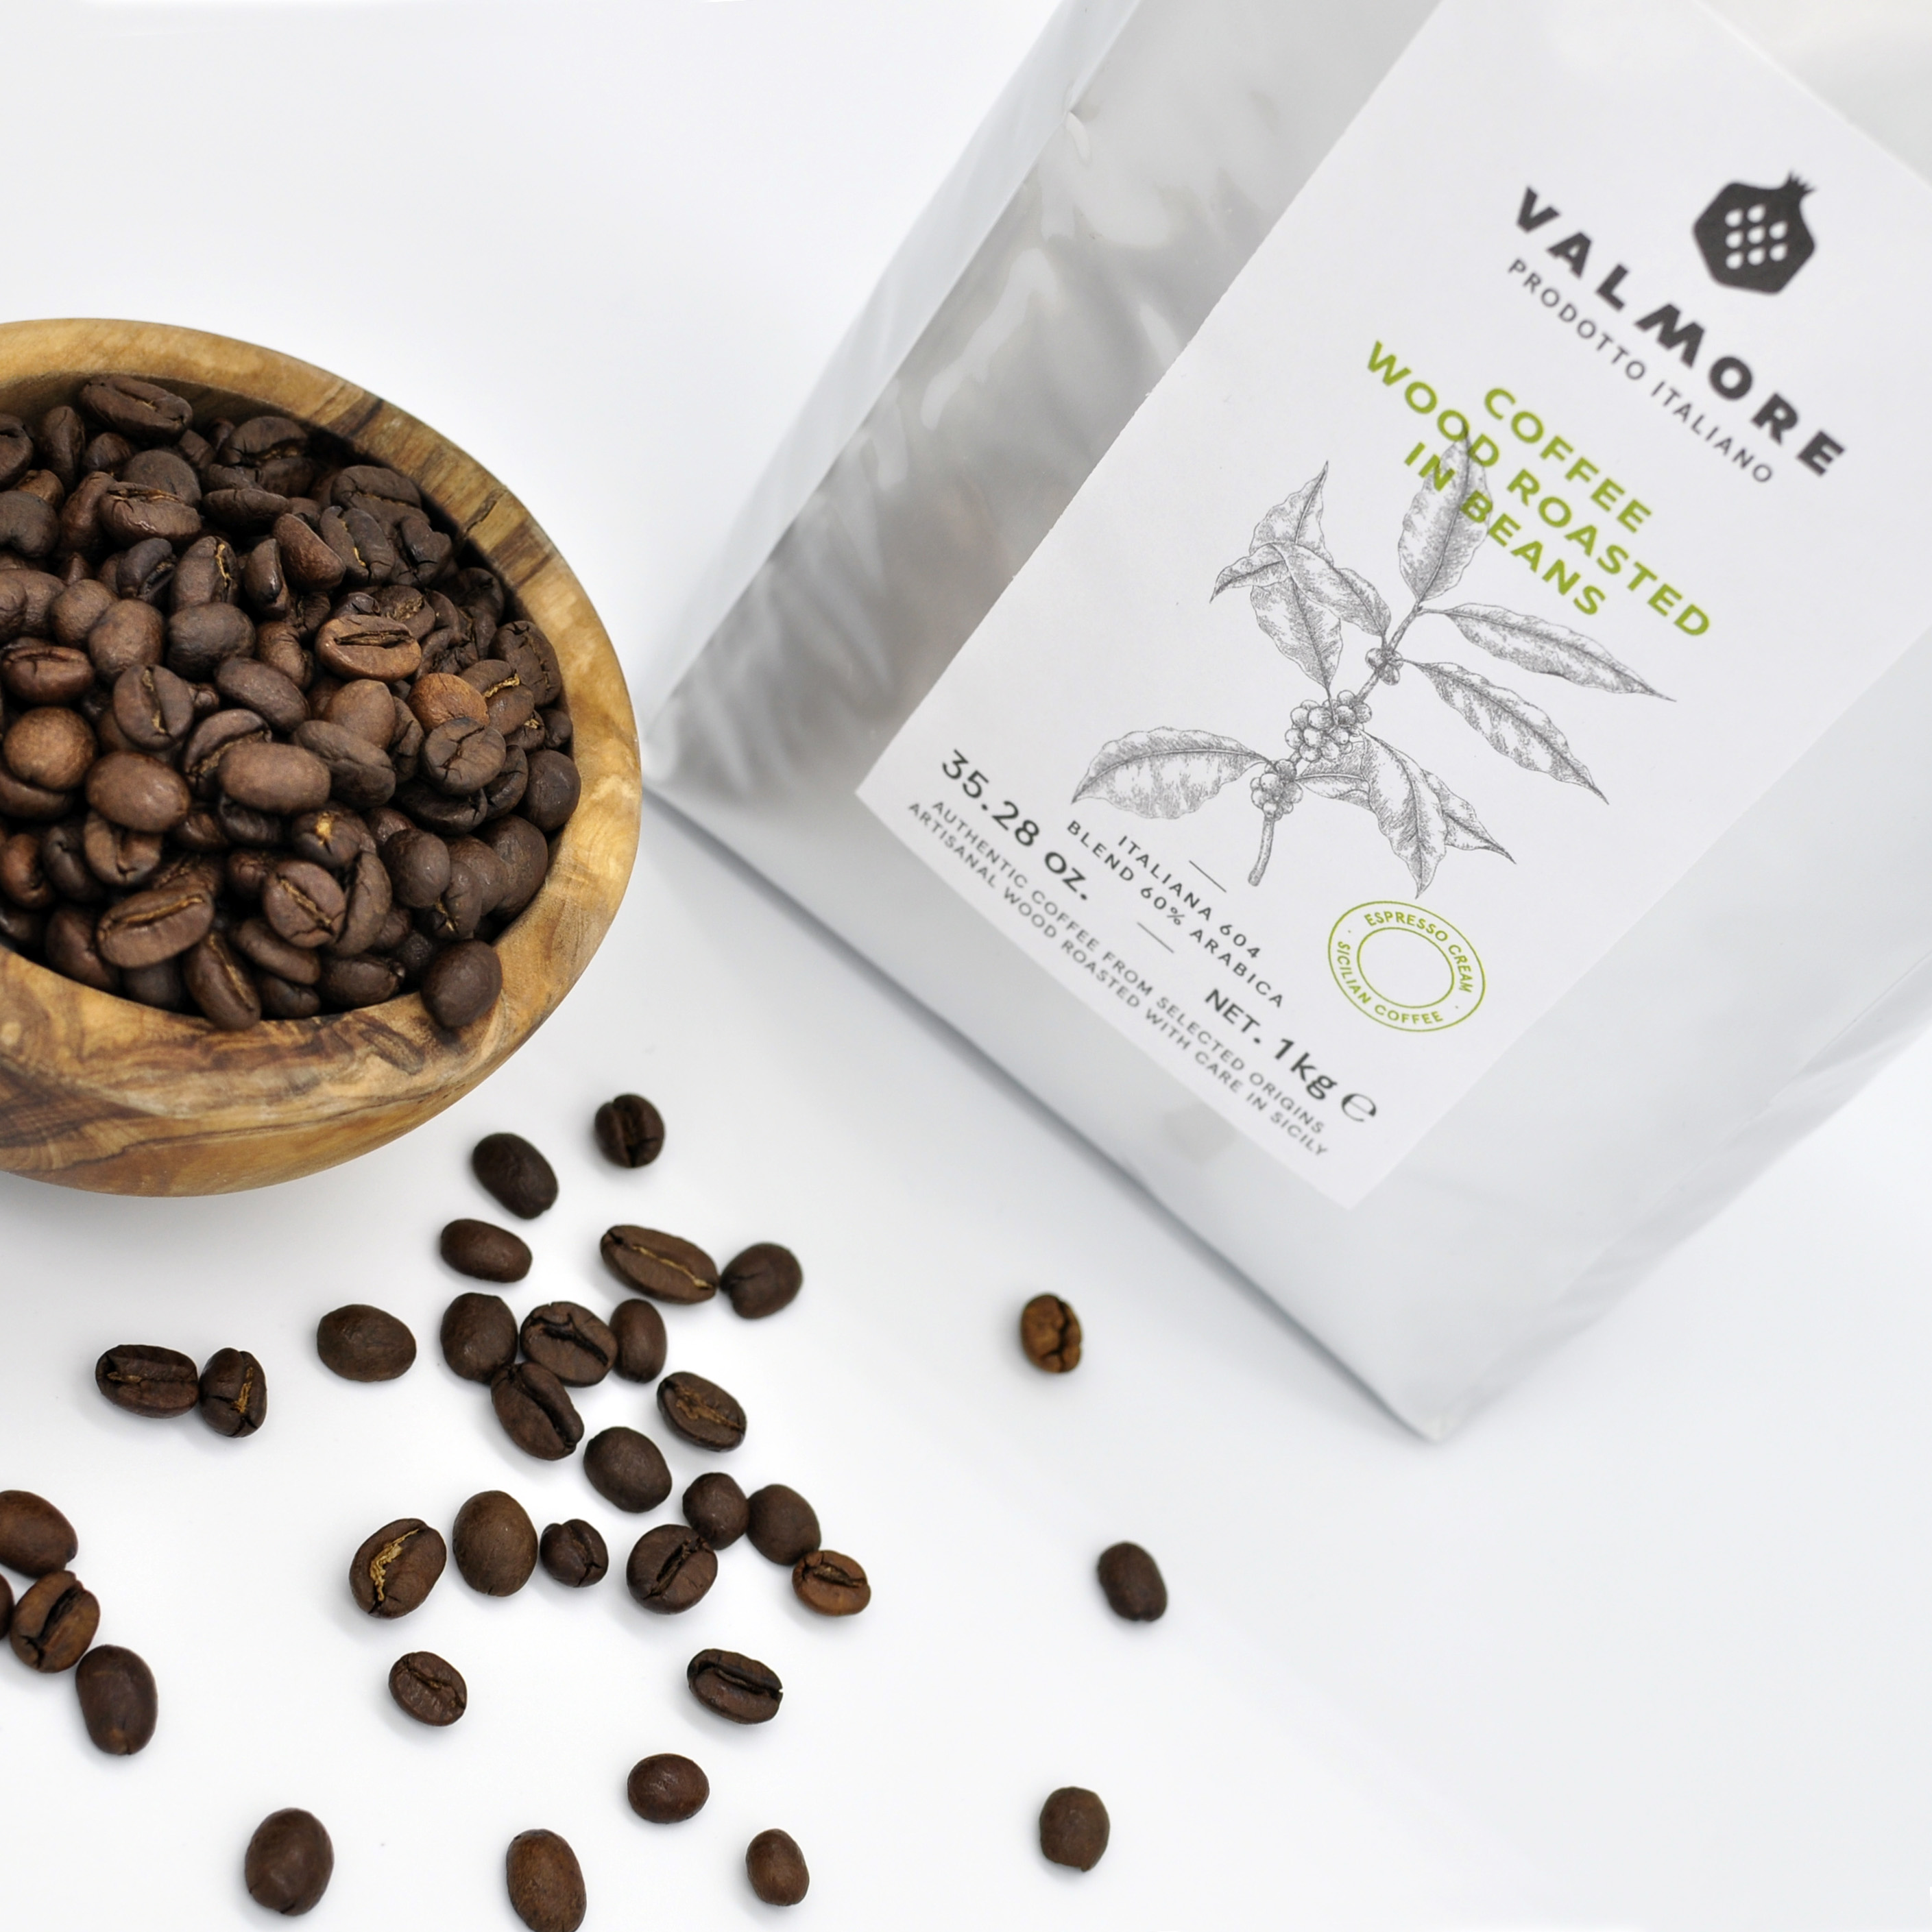 VALMORE 604 Arabica 60% wood roasted in Sicily FRESH